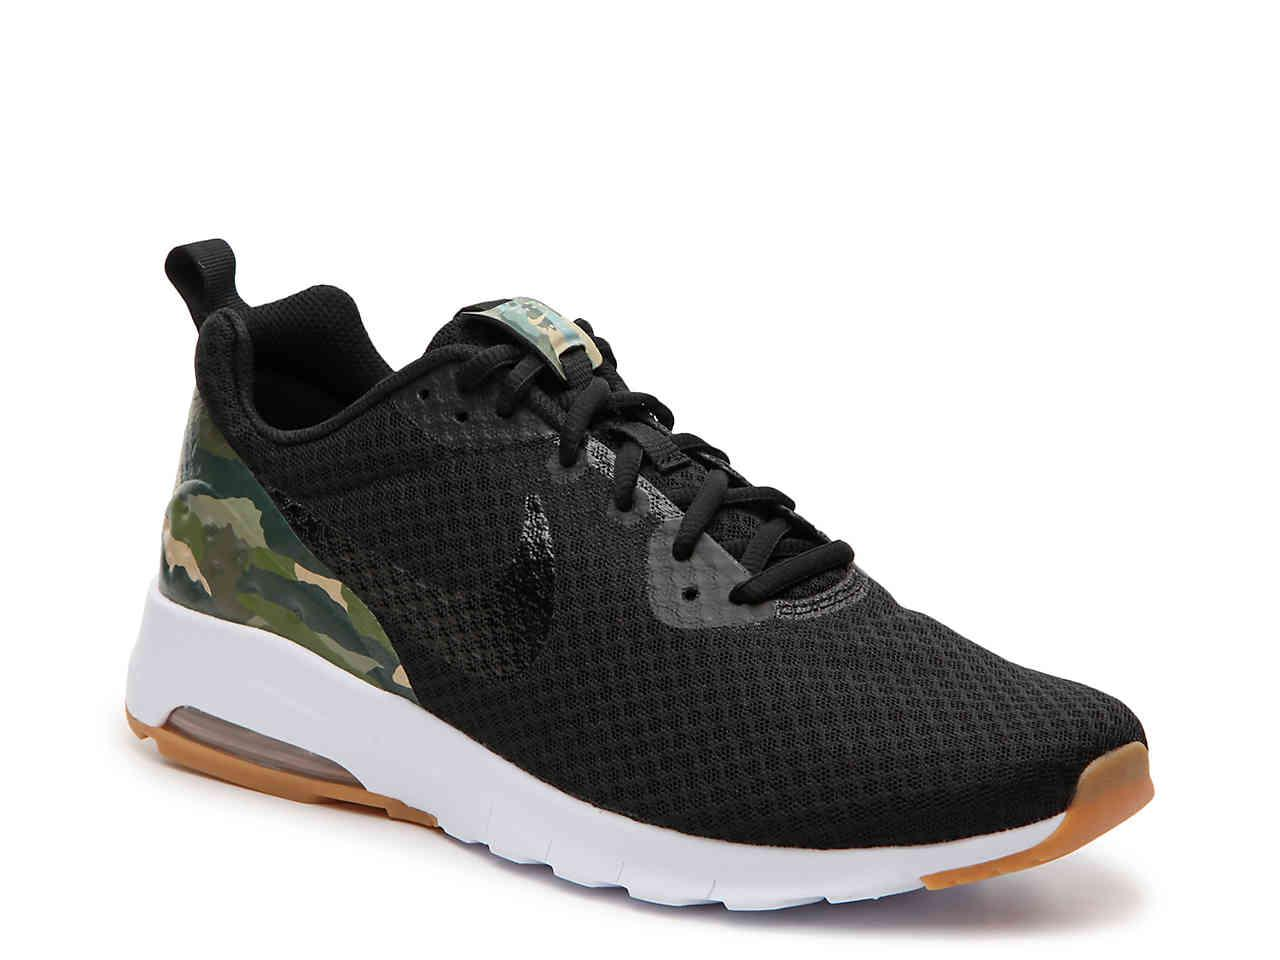 2393ce66 Nike Air Max Motion Lw Premium Sneaker in Black for Men - Lyst